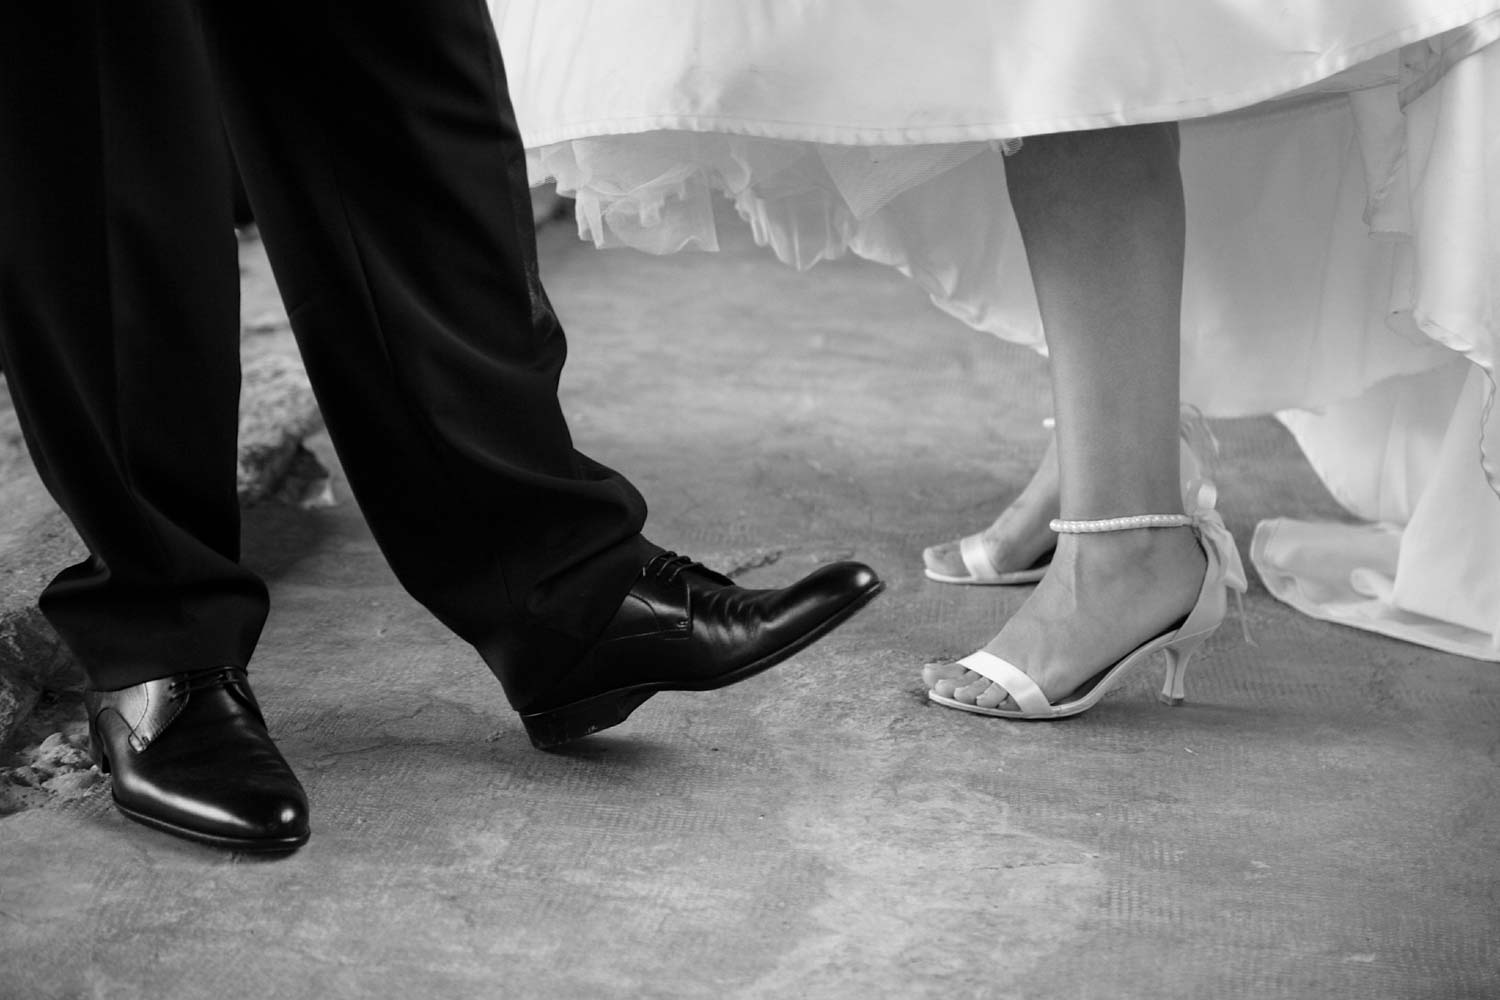 233-mariage-chaussure-maries